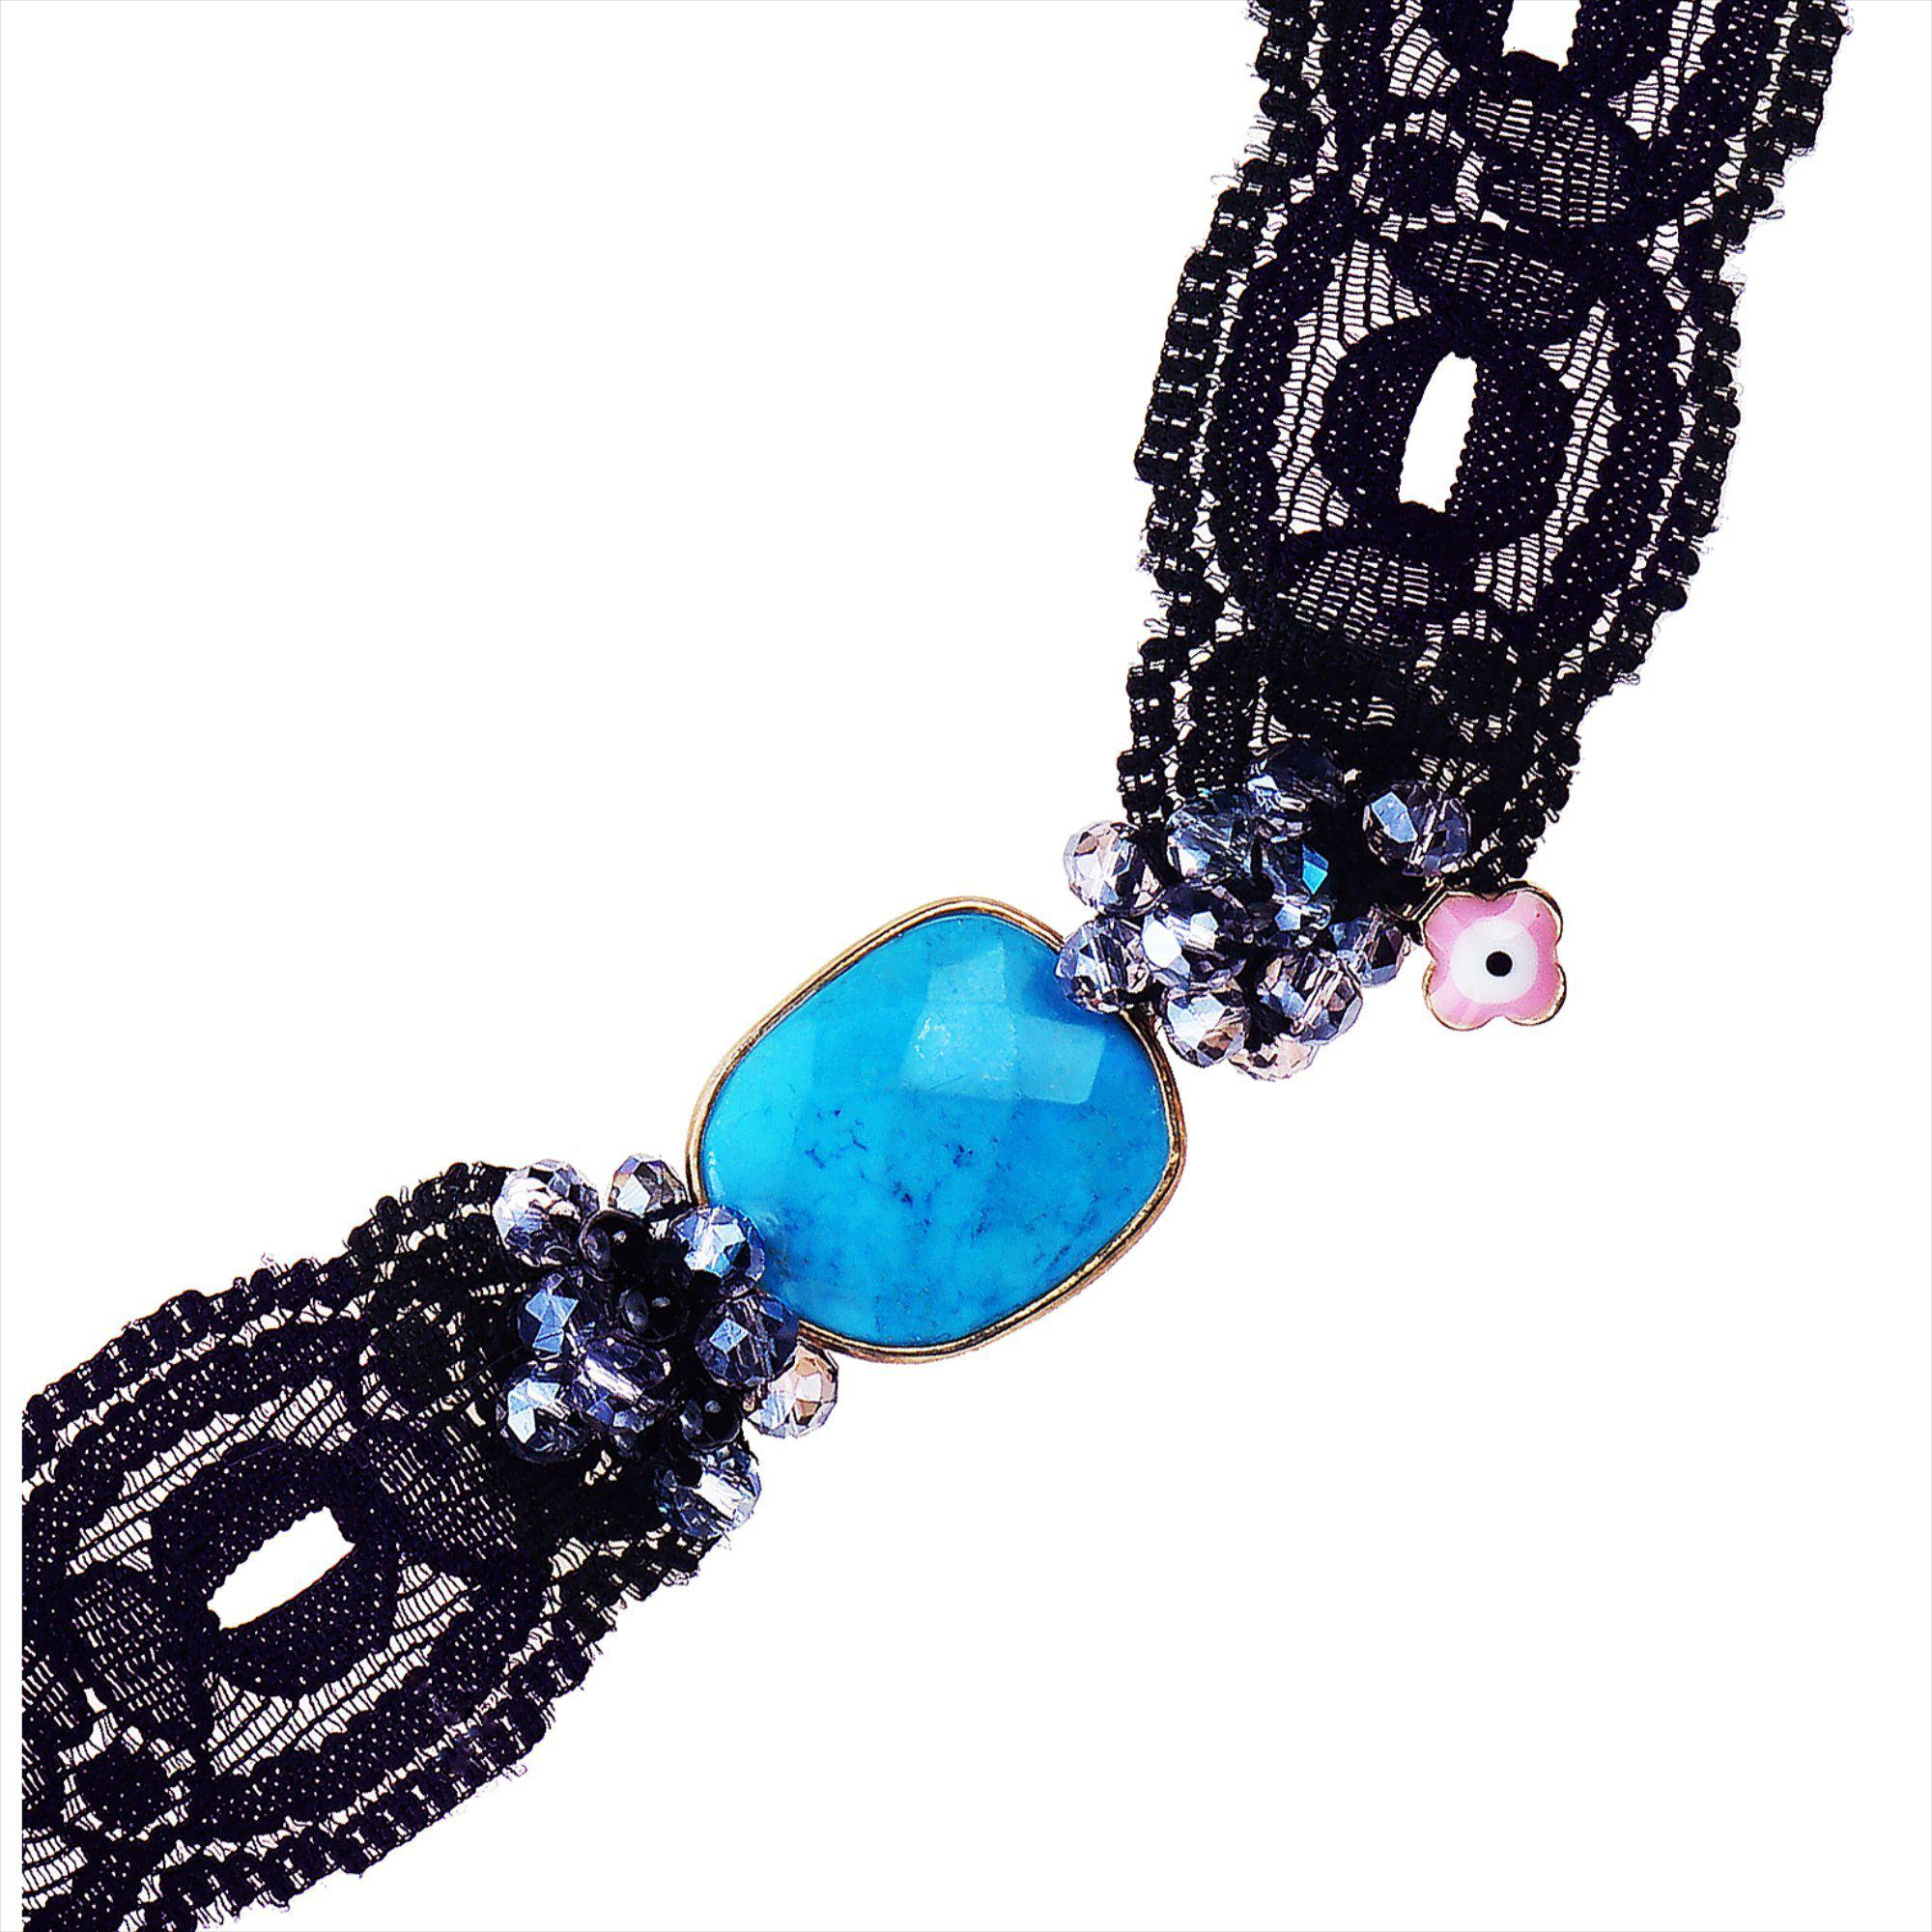 TURQUOISE & LACE NECKLACE 3